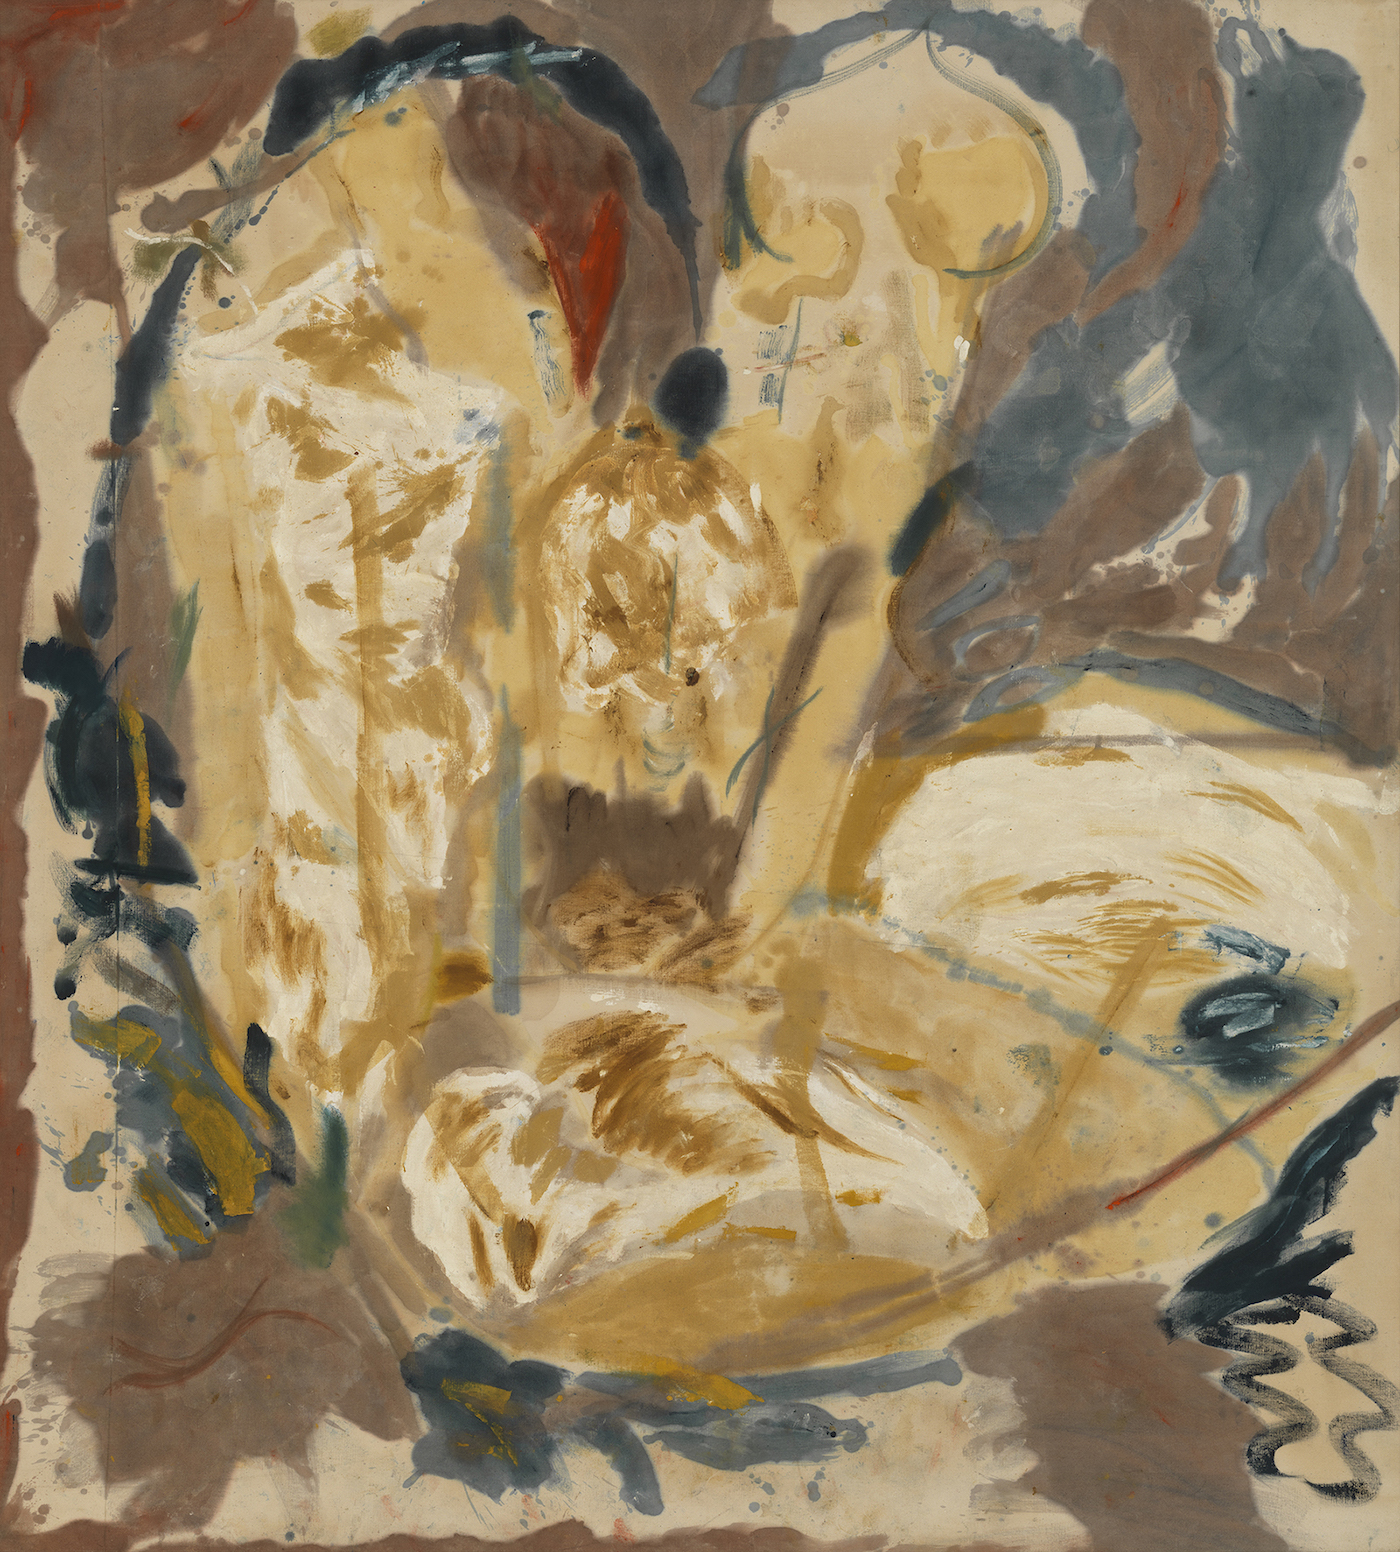 Helen Frankenthaler, Giralda, 1956, oil on unsized, unprimed canvas, 94 x 83 1/2 inches (Helen Frankenthaler Foundation (© 2017 Helen Frankenthaler Foundation, Inc. / Artists Rights Society (ARS), New York)